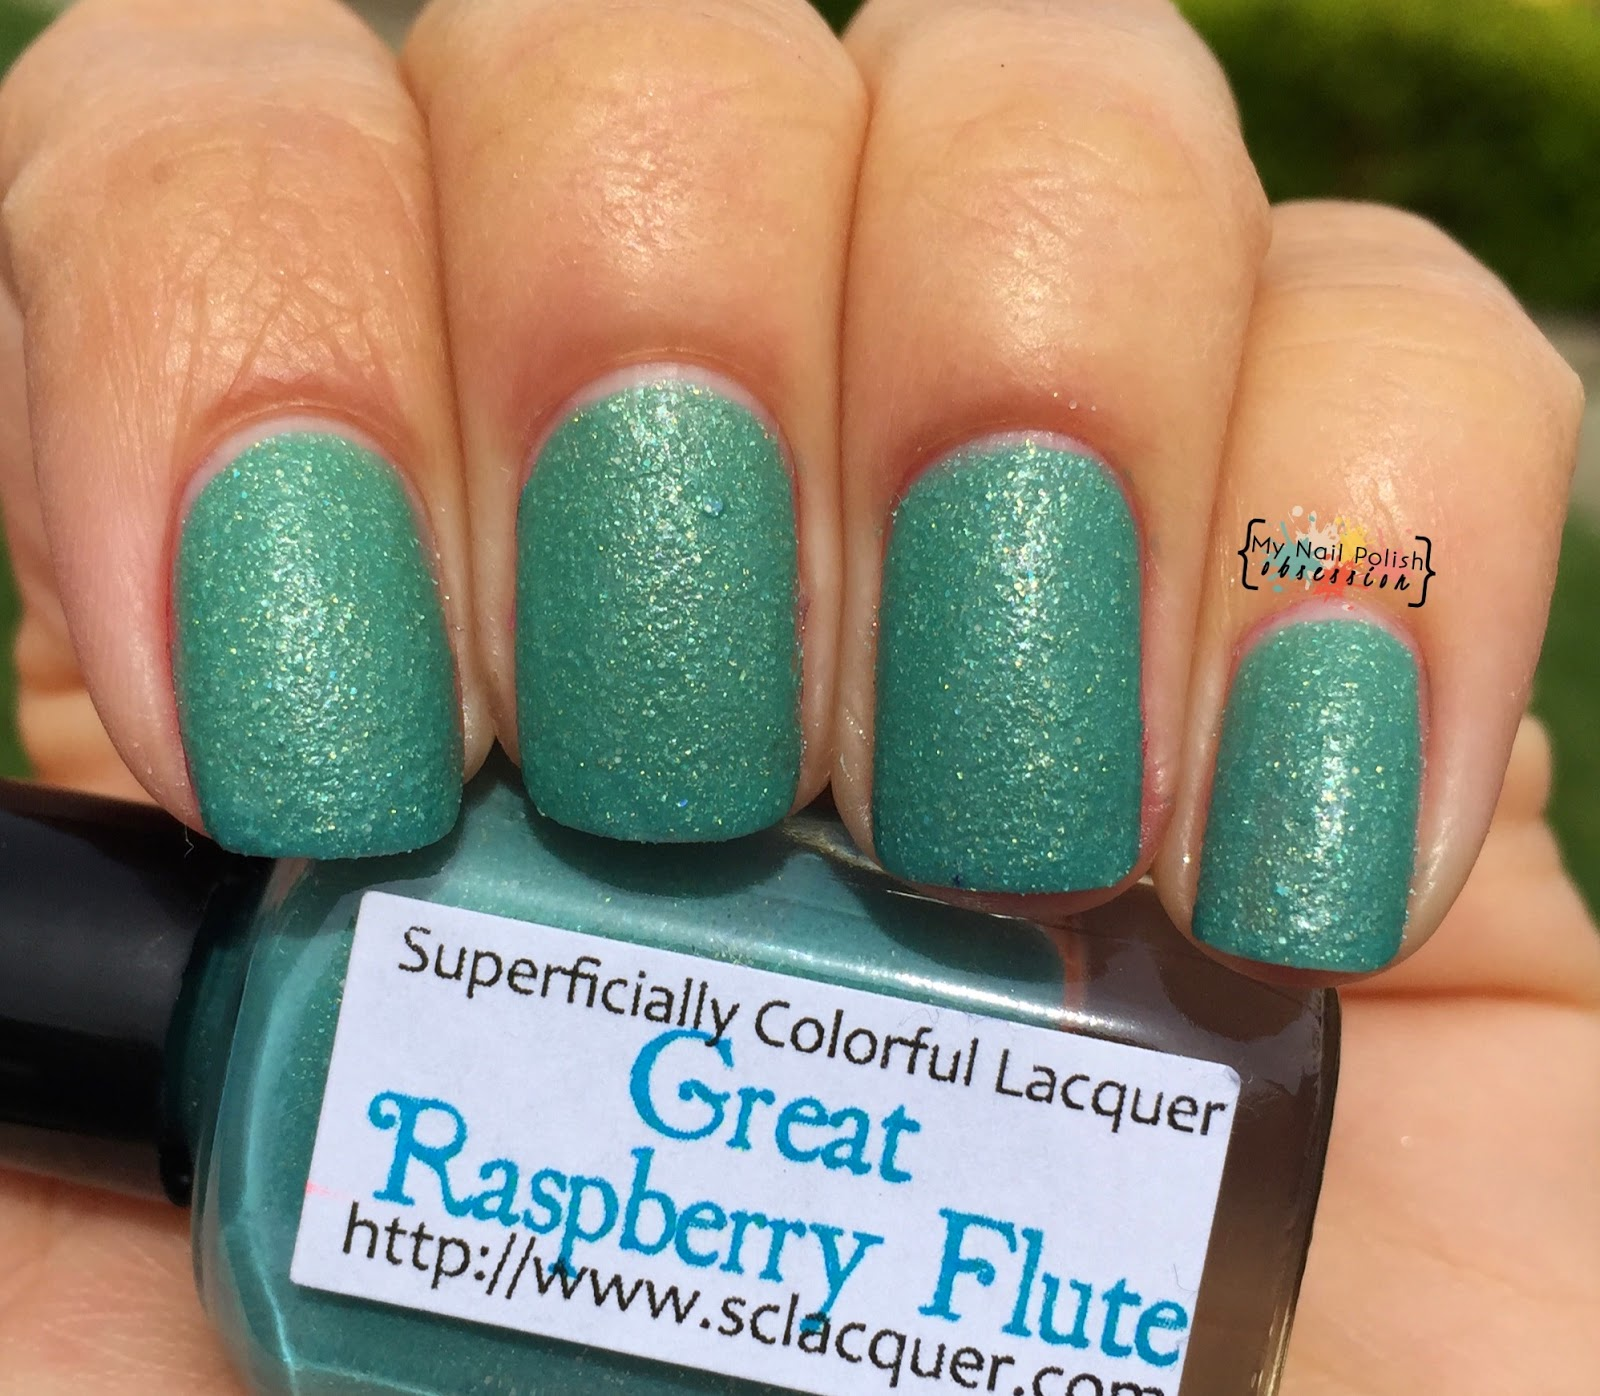 Superficially Colorful Lacquer Great Raspberry Flute